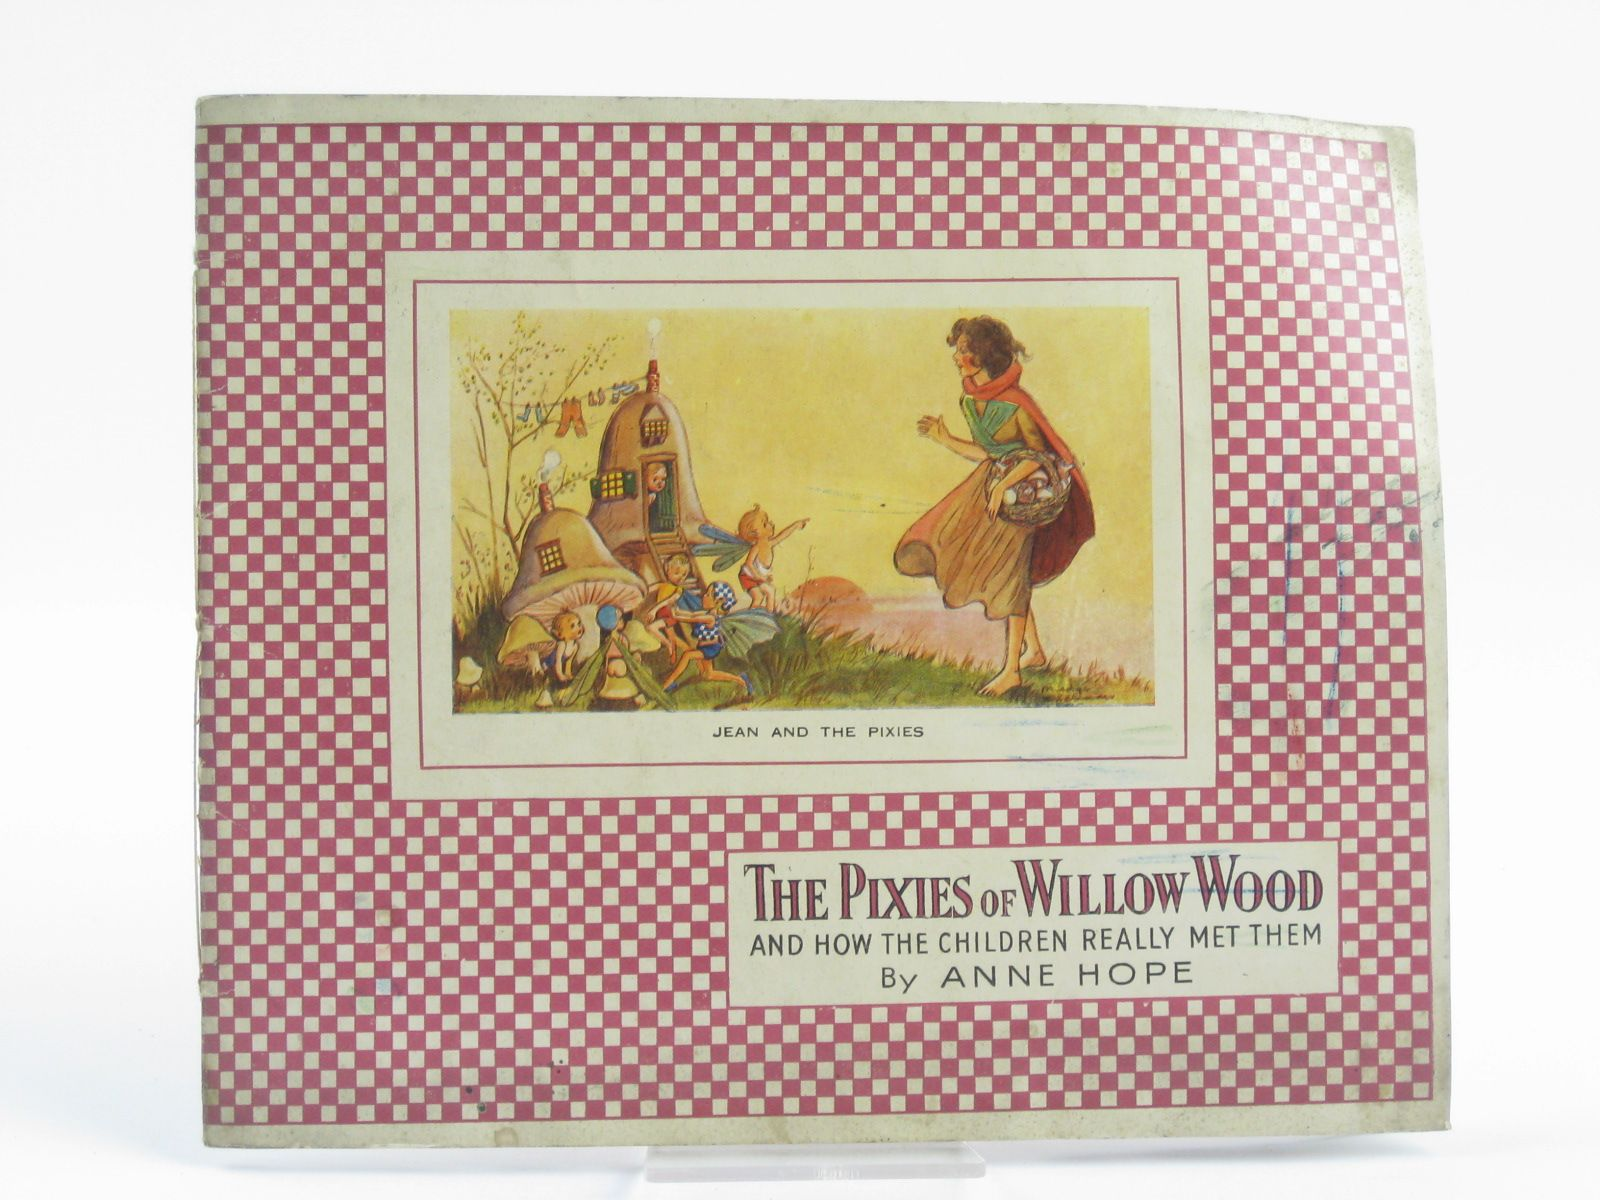 Photo of THE PIXIES OF WILLOW WOOD written by Hope, Anne illustrated by Williams, Madge published by J. Salmon (STOCK CODE: 1310278)  for sale by Stella & Rose's Books